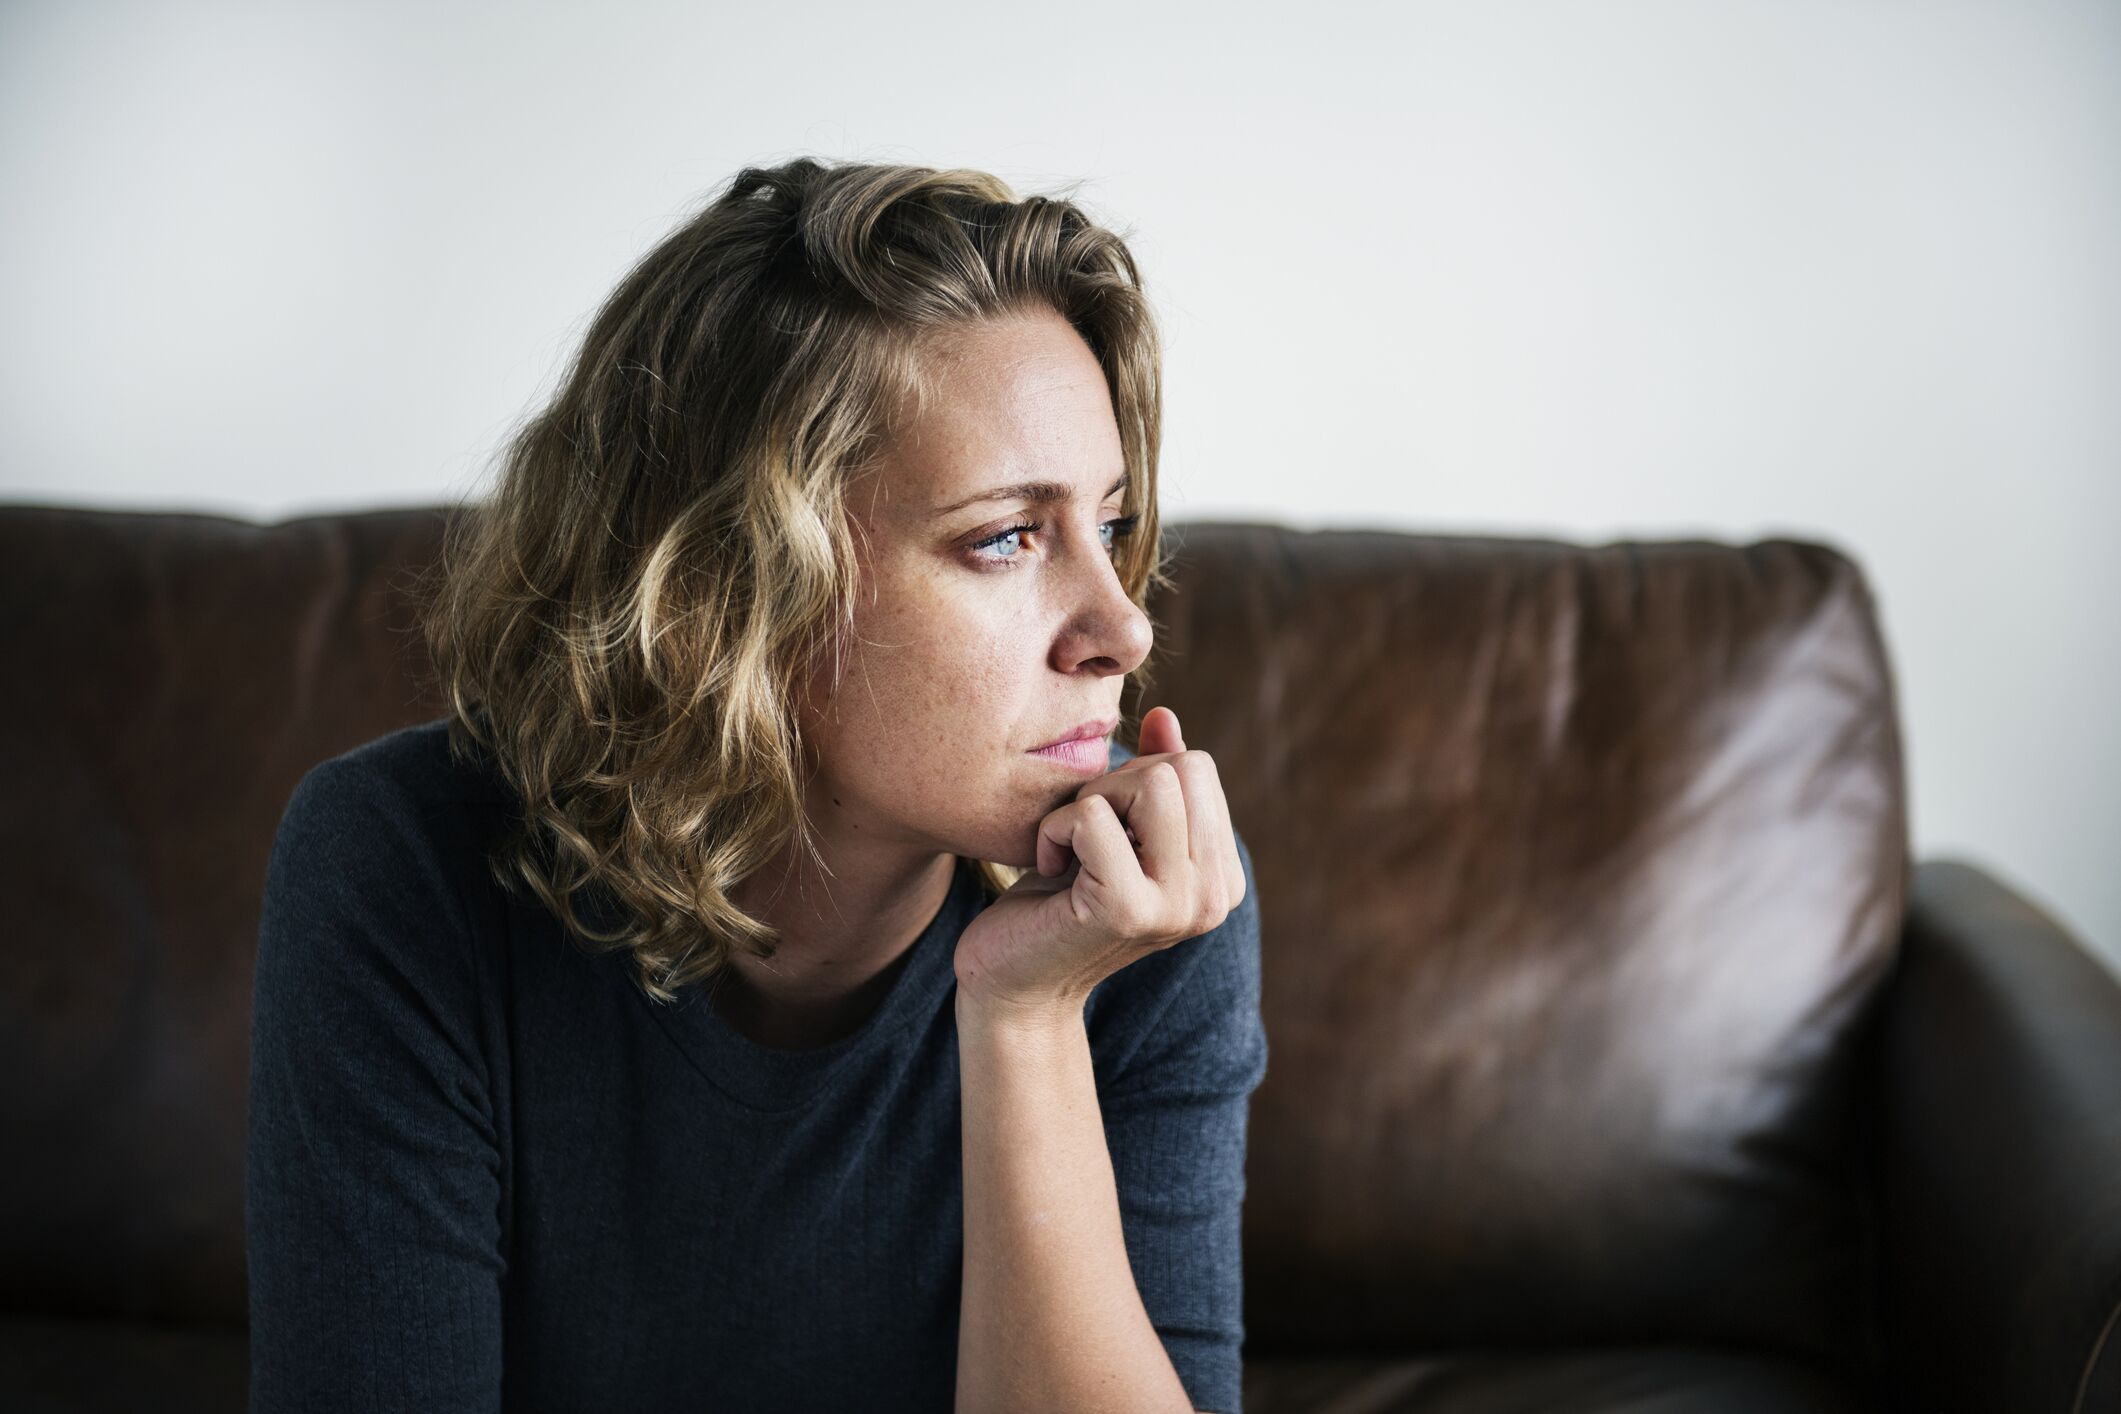 Portrait of a thoughtful woman